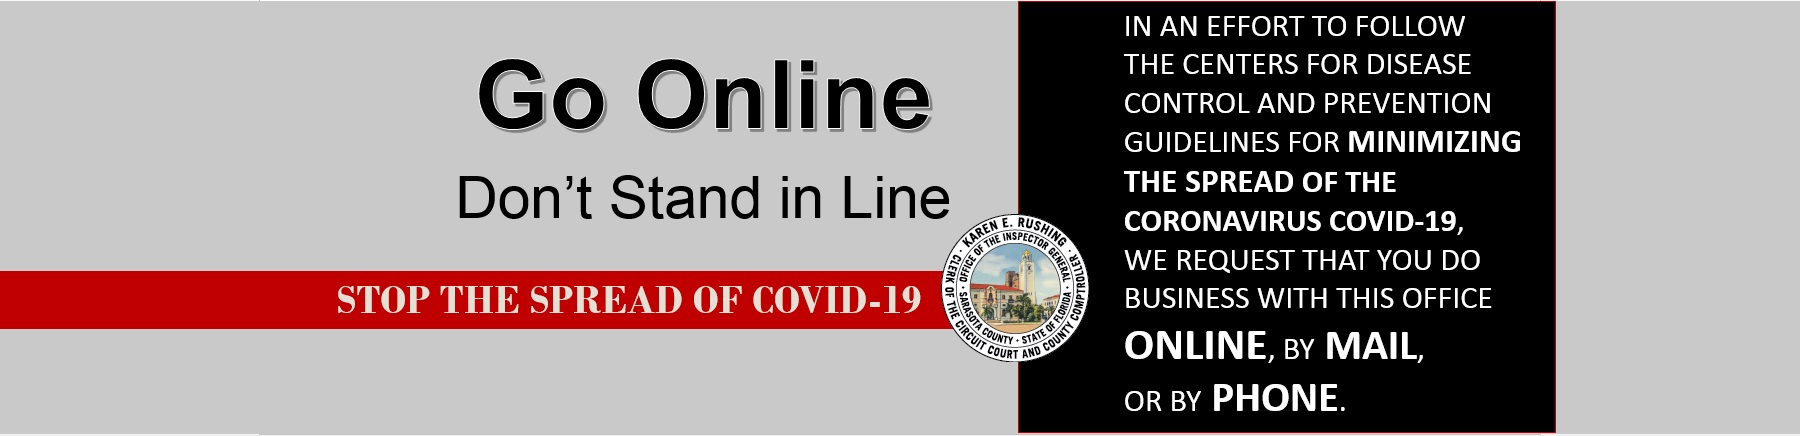 Go online. Don't stand in line. Stop the spread of COVID-19.